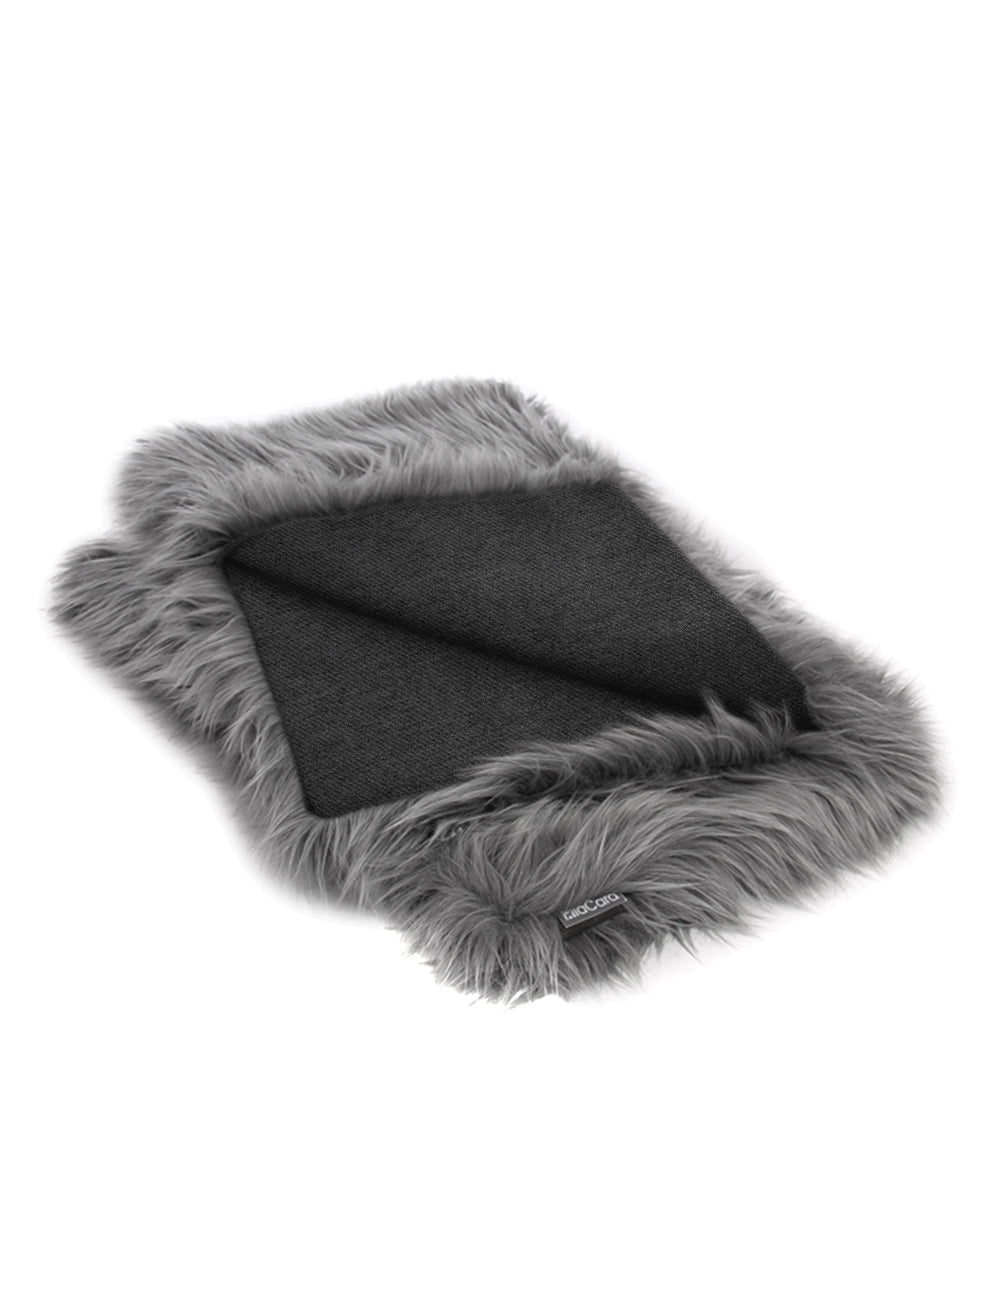 Capello Dog Blanket | Grey & Black